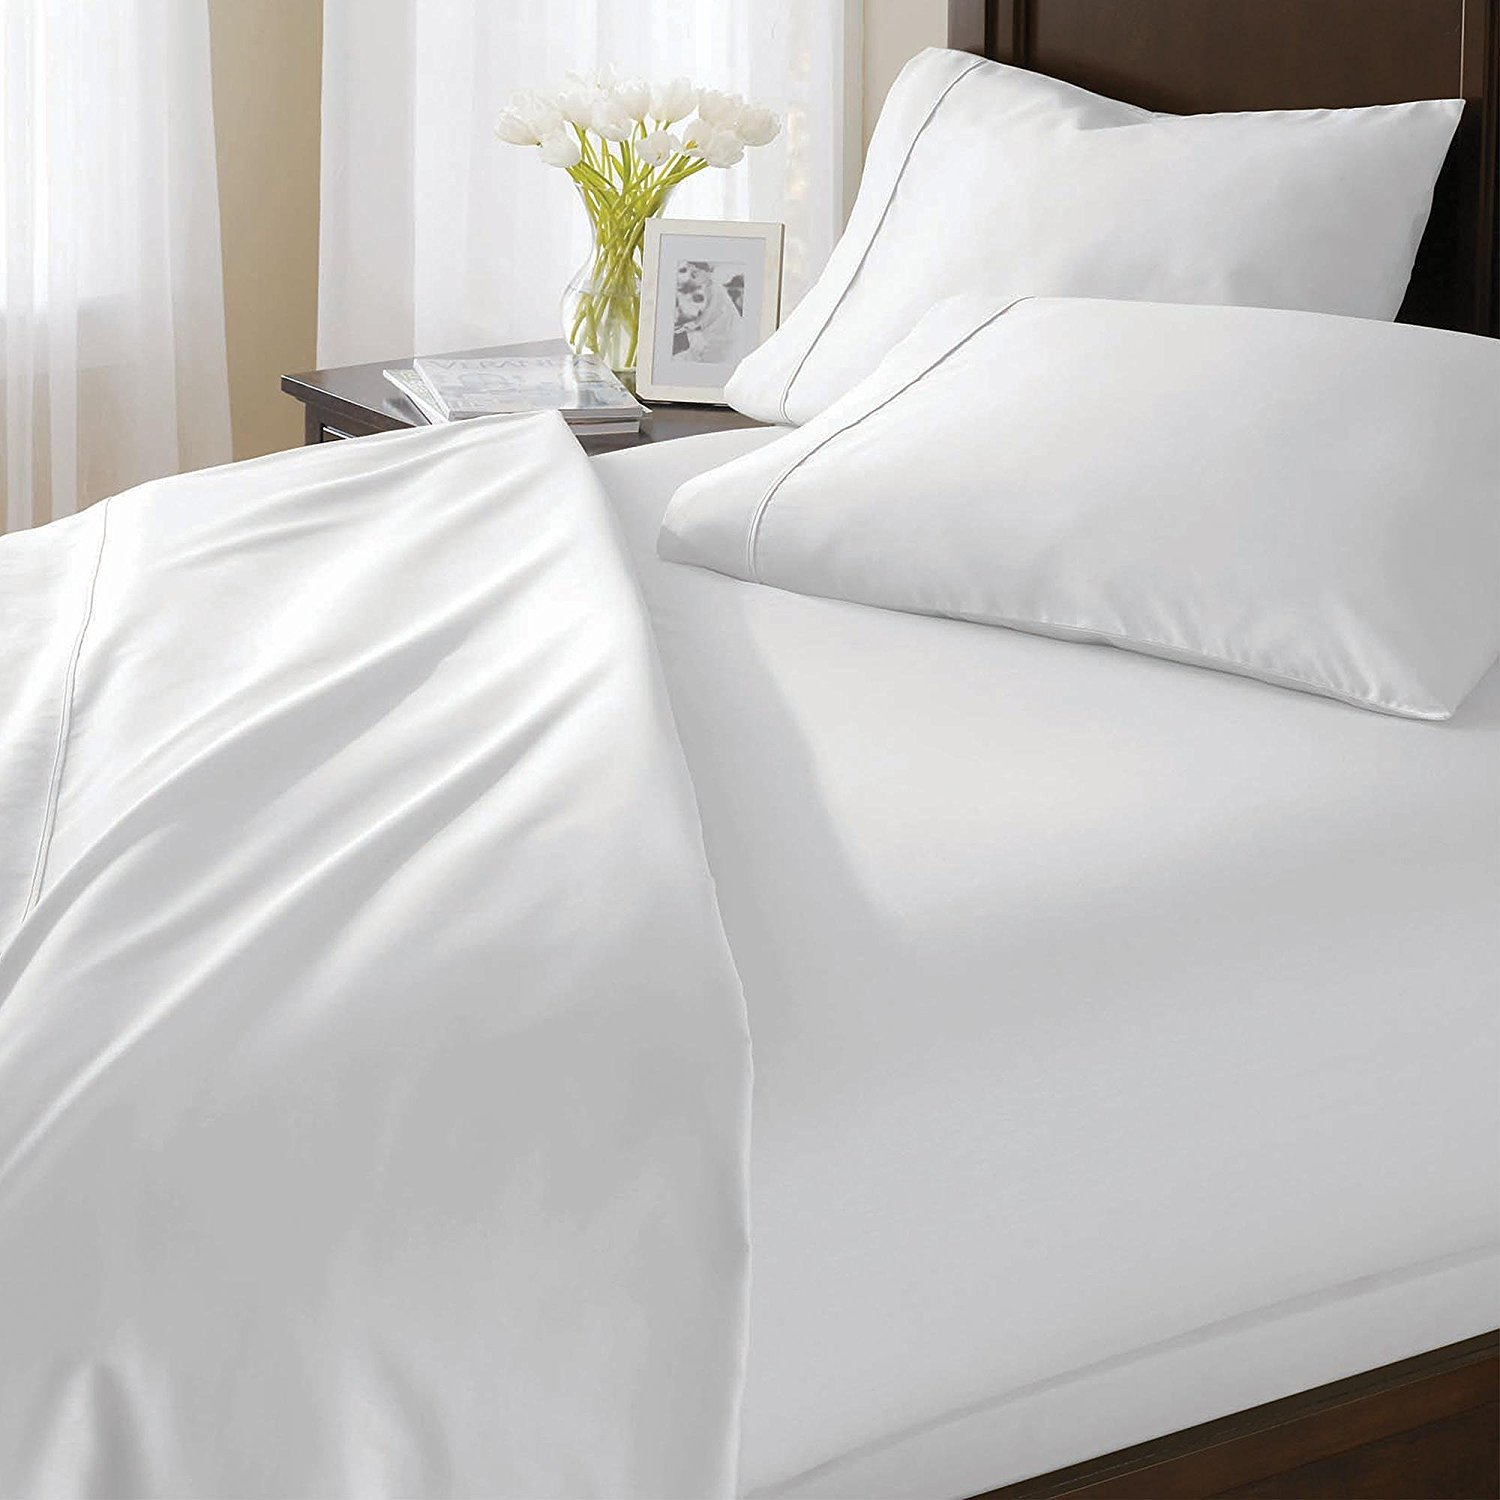 800TC 100% Cotton (Egyptian Cotton) Solid White 6 Piece Sheet Set – Complete Bedding Set Includes x1 Flat Sheet x4 Pillowcases and x1 Fitted Sheet in Pure White by King Kong - Queen Size-40 cm Deep